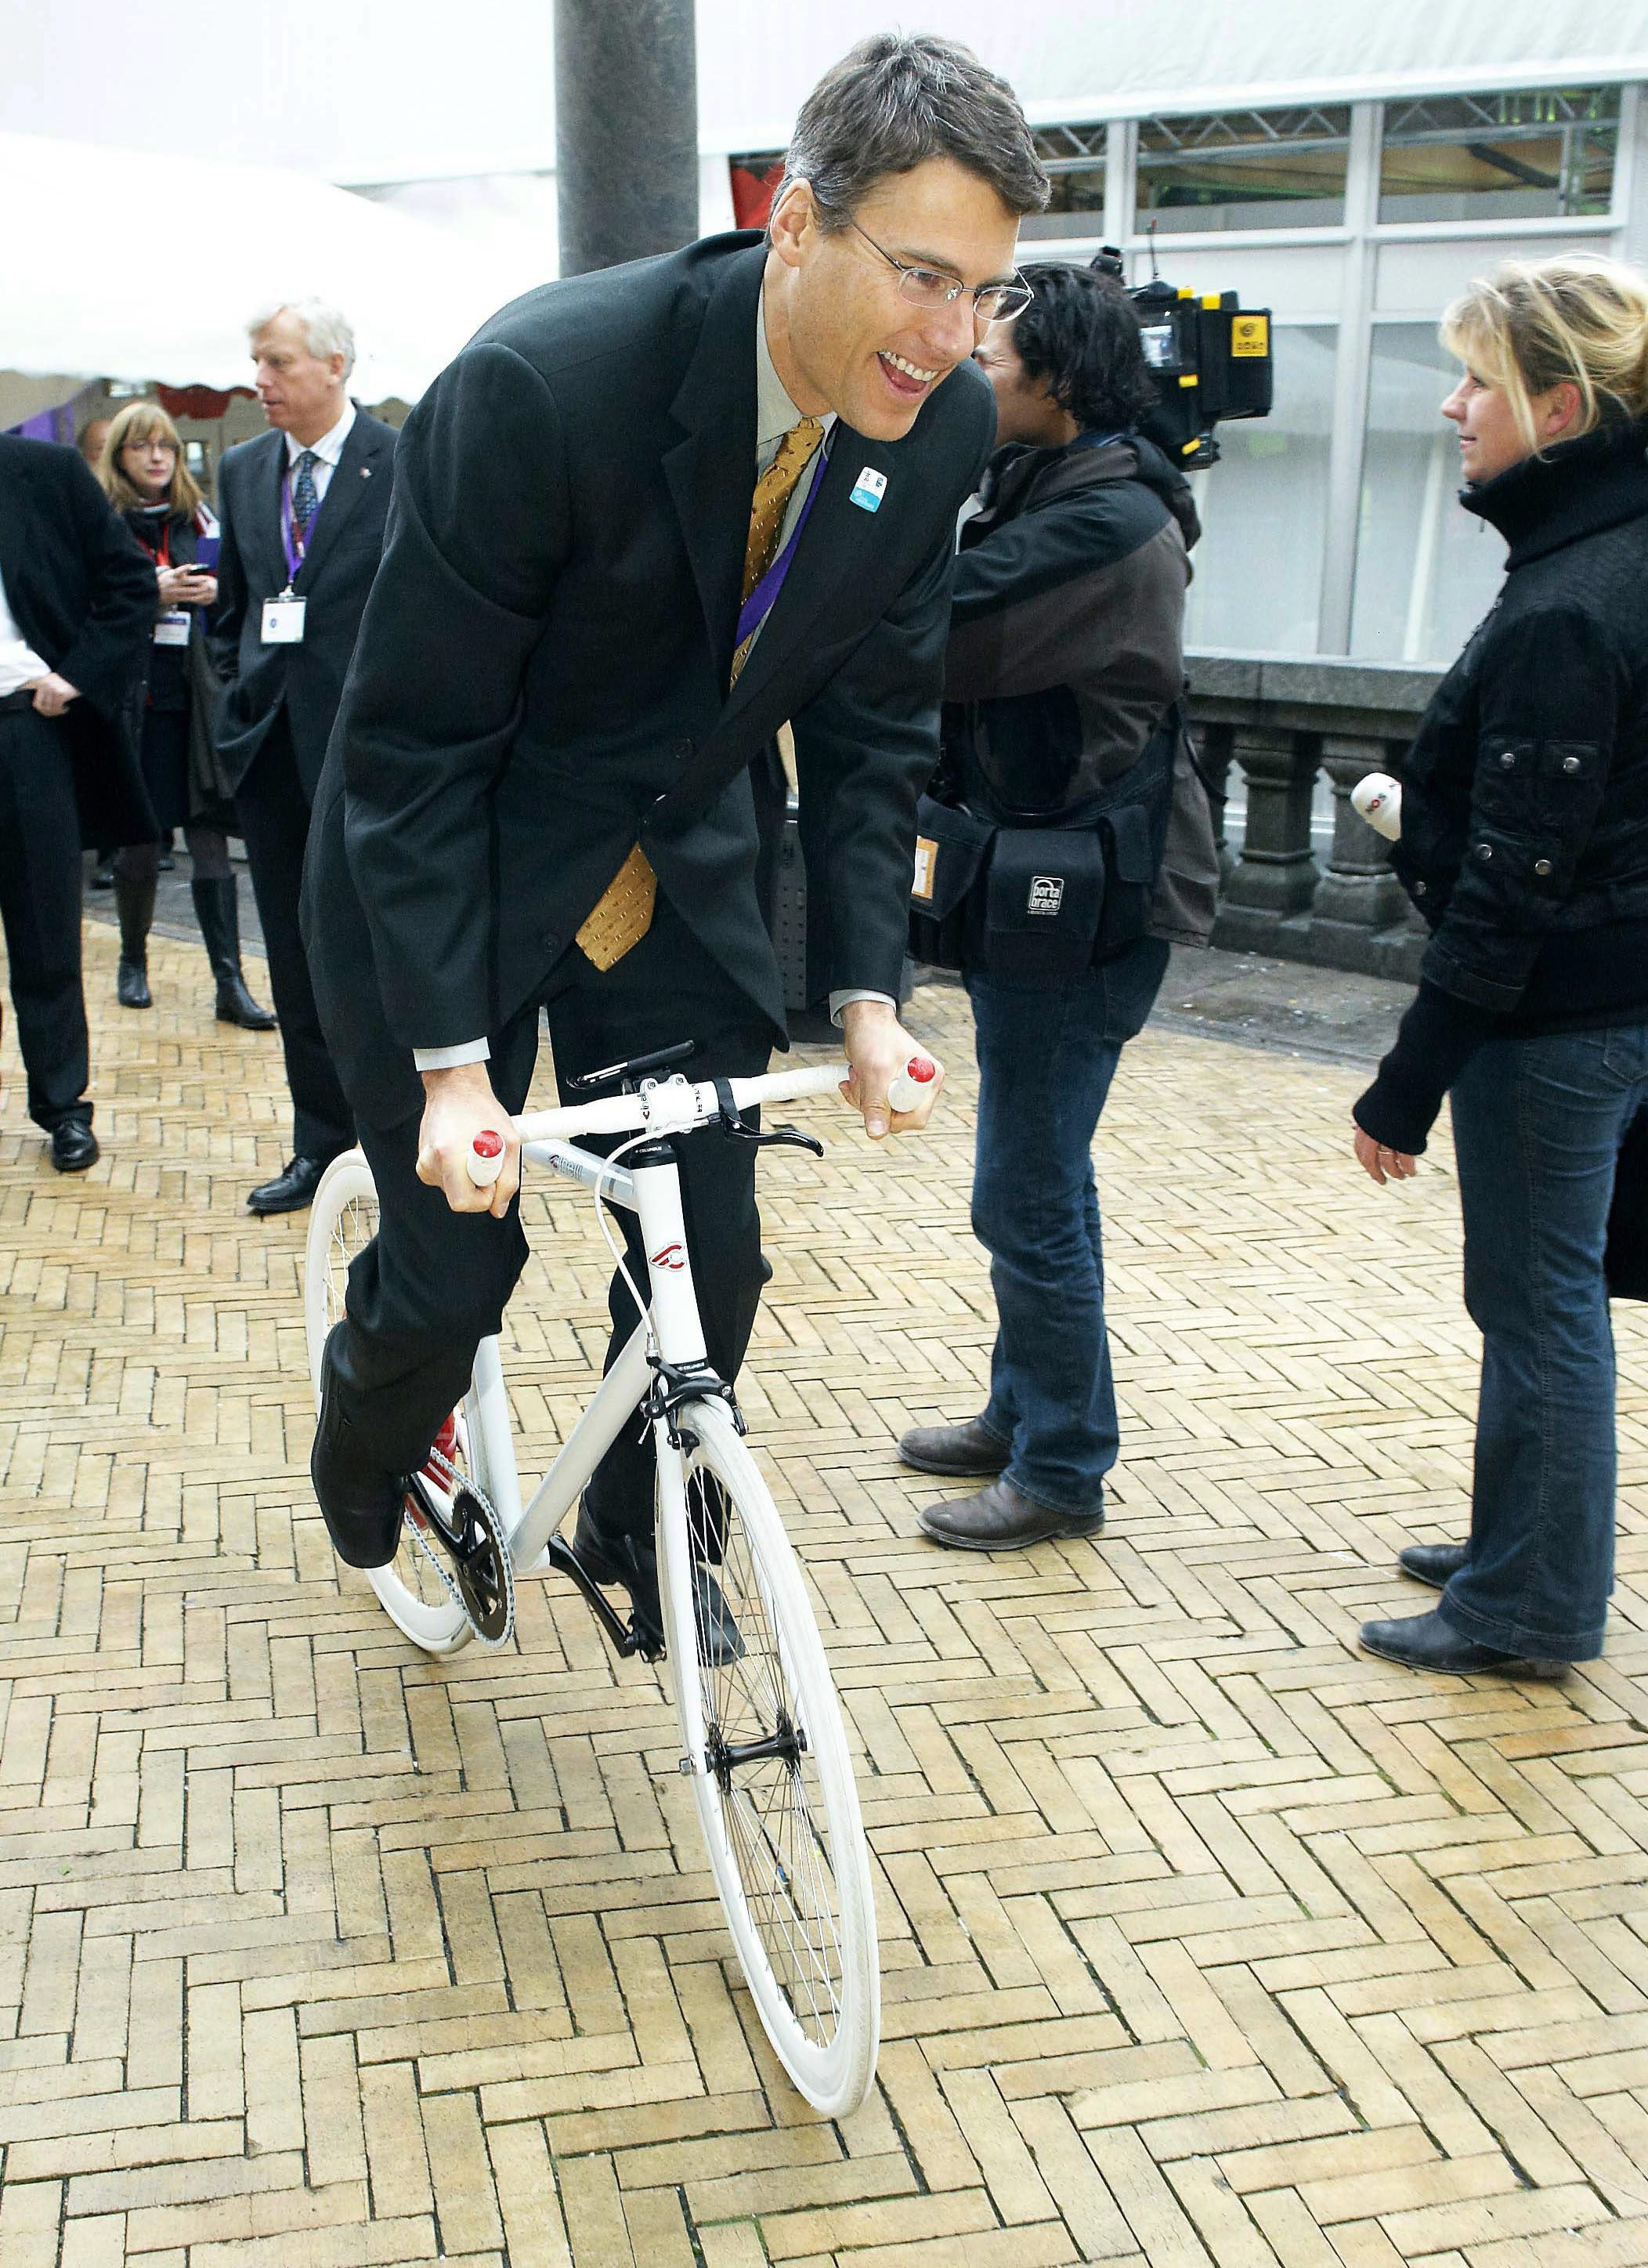 Mayor Gregor Robertson rides a bike during a U.N. climate change conference in Denmark in 2009. (Jens Dige/CP)